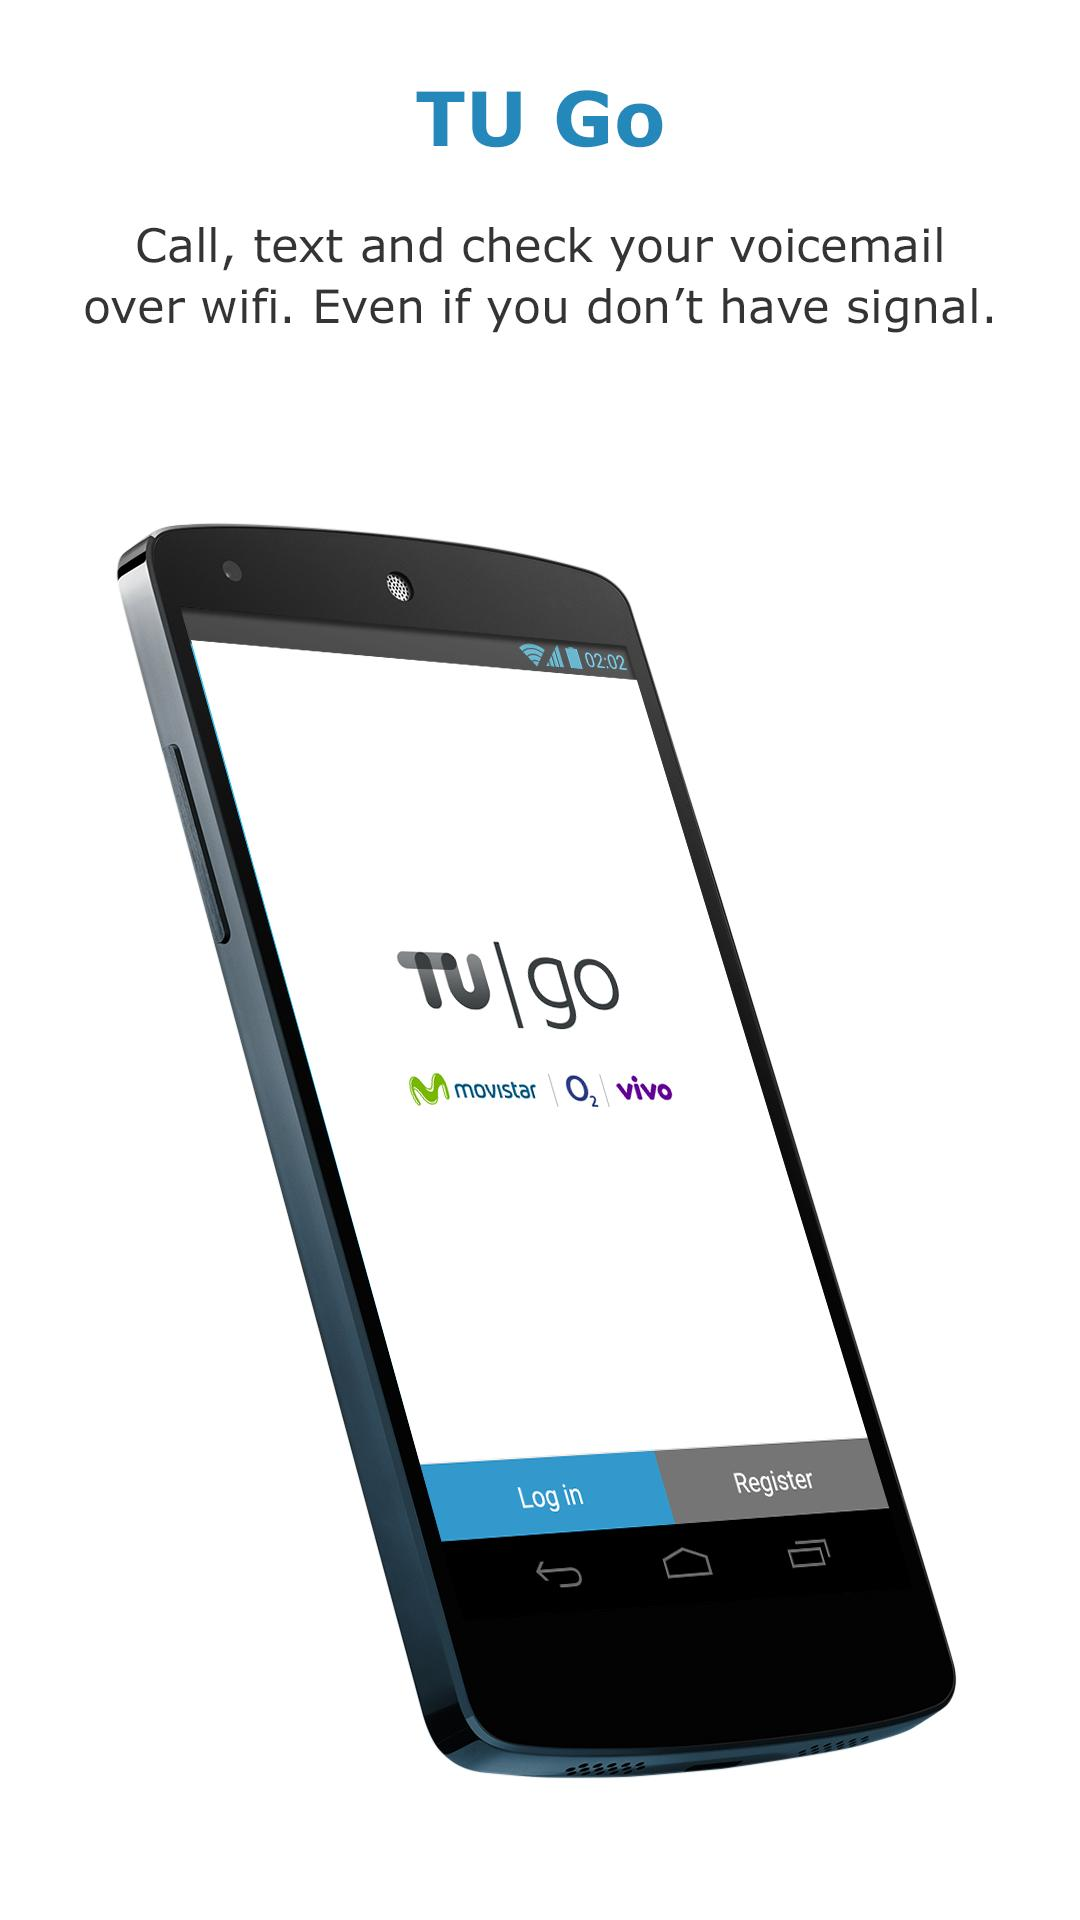 TU (Movistar/O2) for Android - APK Download